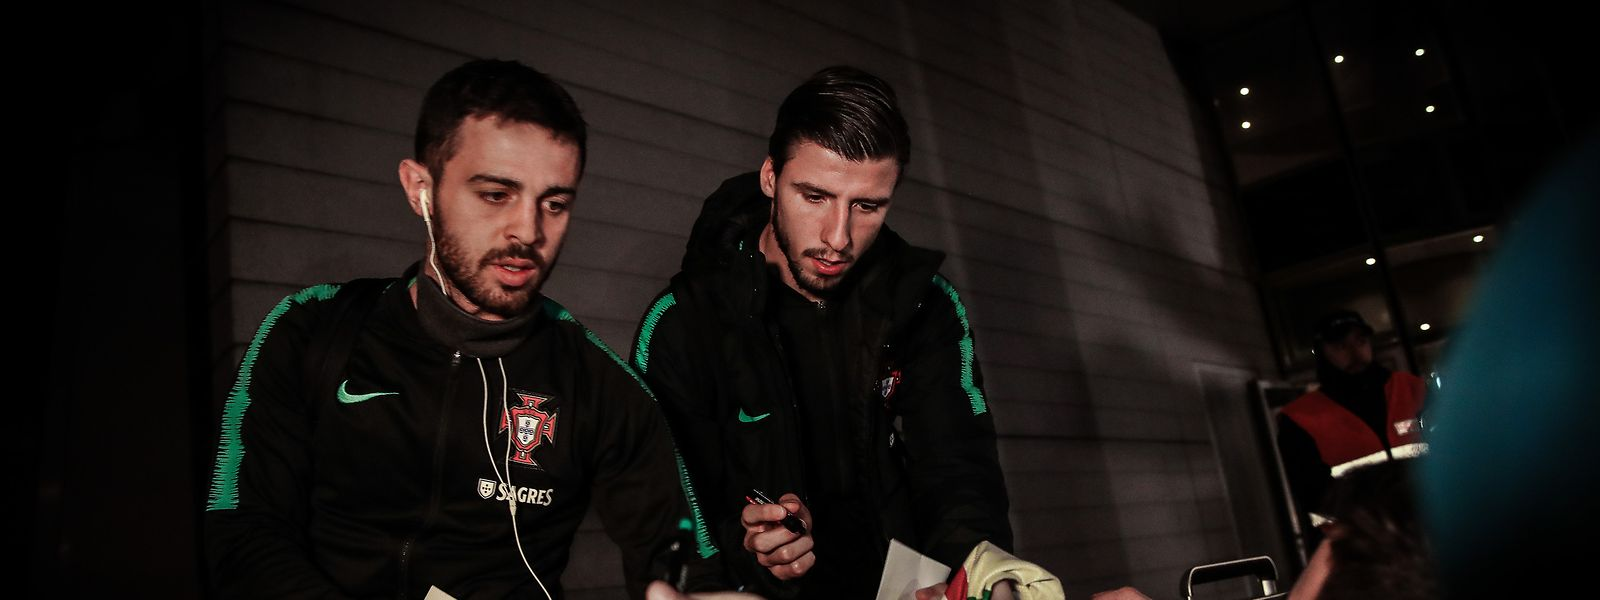 Portugal's Bernardo Silva (L) and Ruben Dias (R) arrive to a hotel in downtown Luxembourg, Luxembourg, 15 November 2019. Portugal will face Luxembourg in a UEFA Euro 2020 Qualifying round - Group B match on November 17. MARIO CRUZ/LUSA